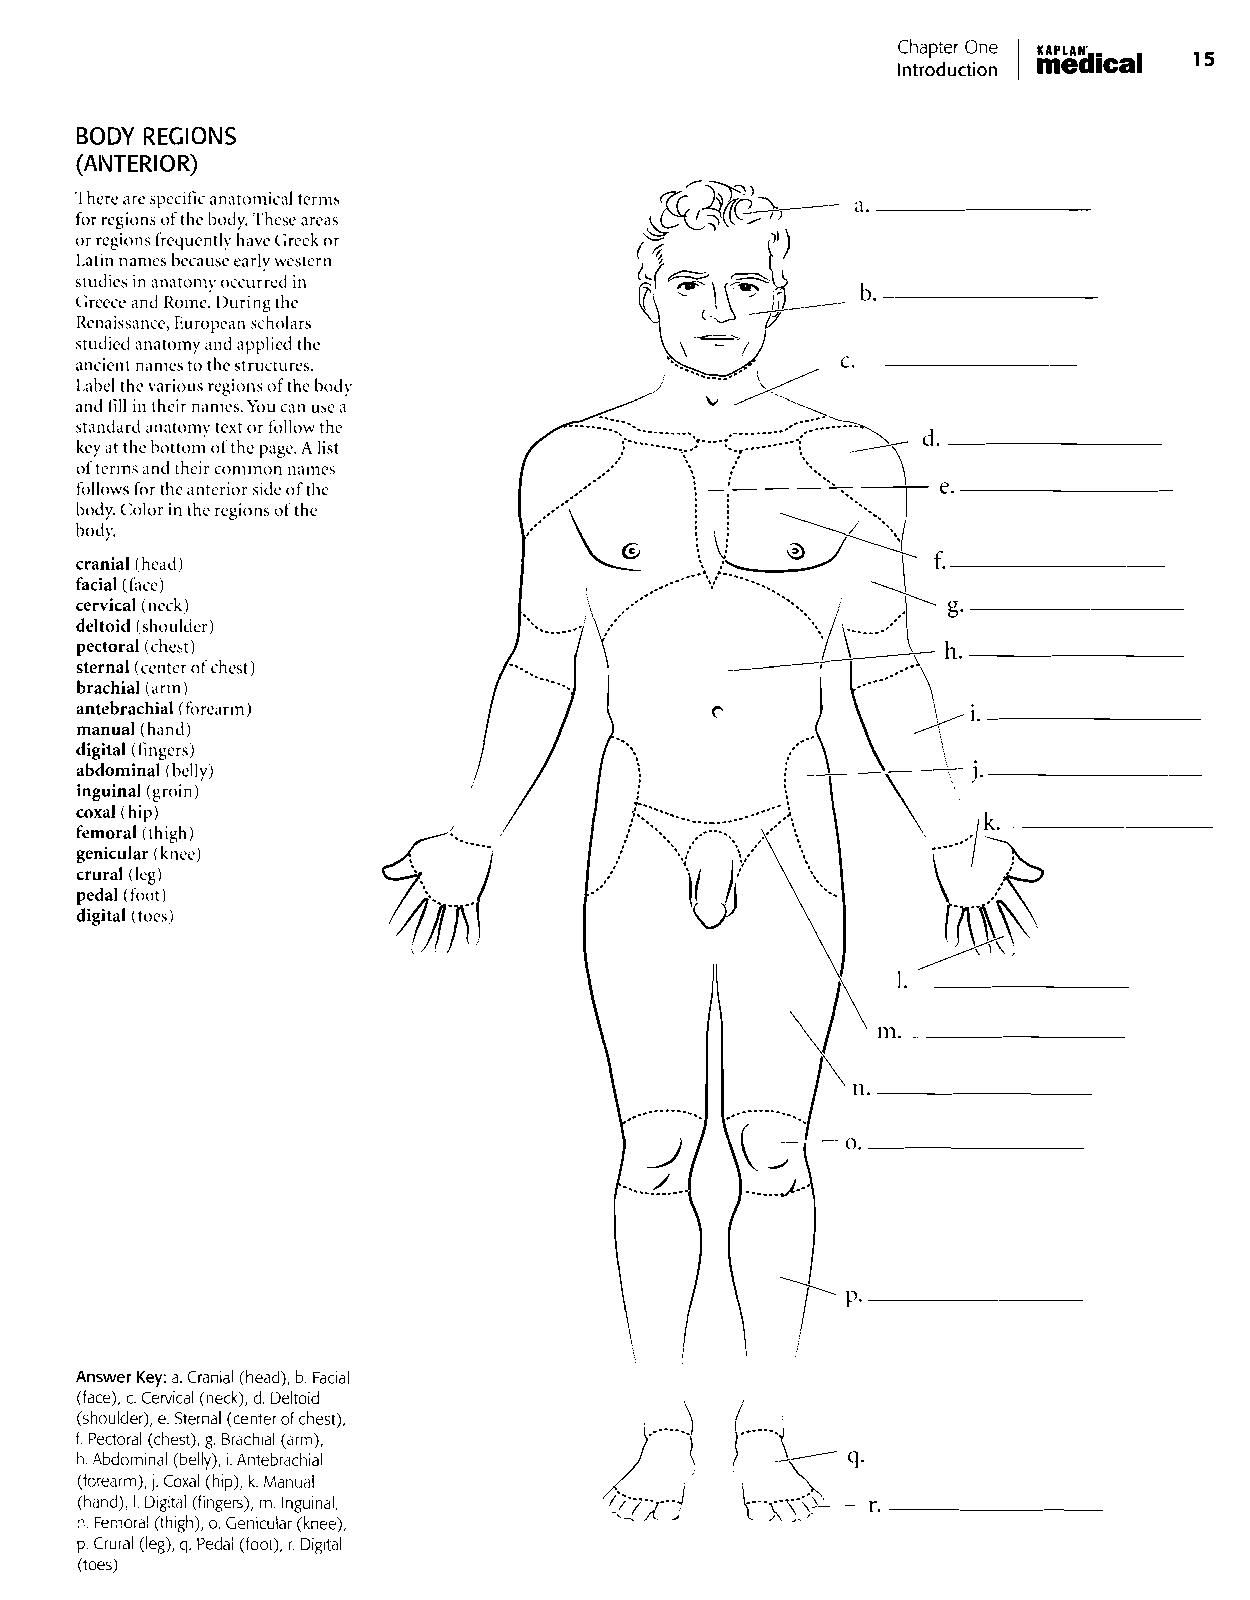 Kaplan Anatomy Coloring Book Pdf Anatomy Coloring Book Coloring Books Cat Coloring Book